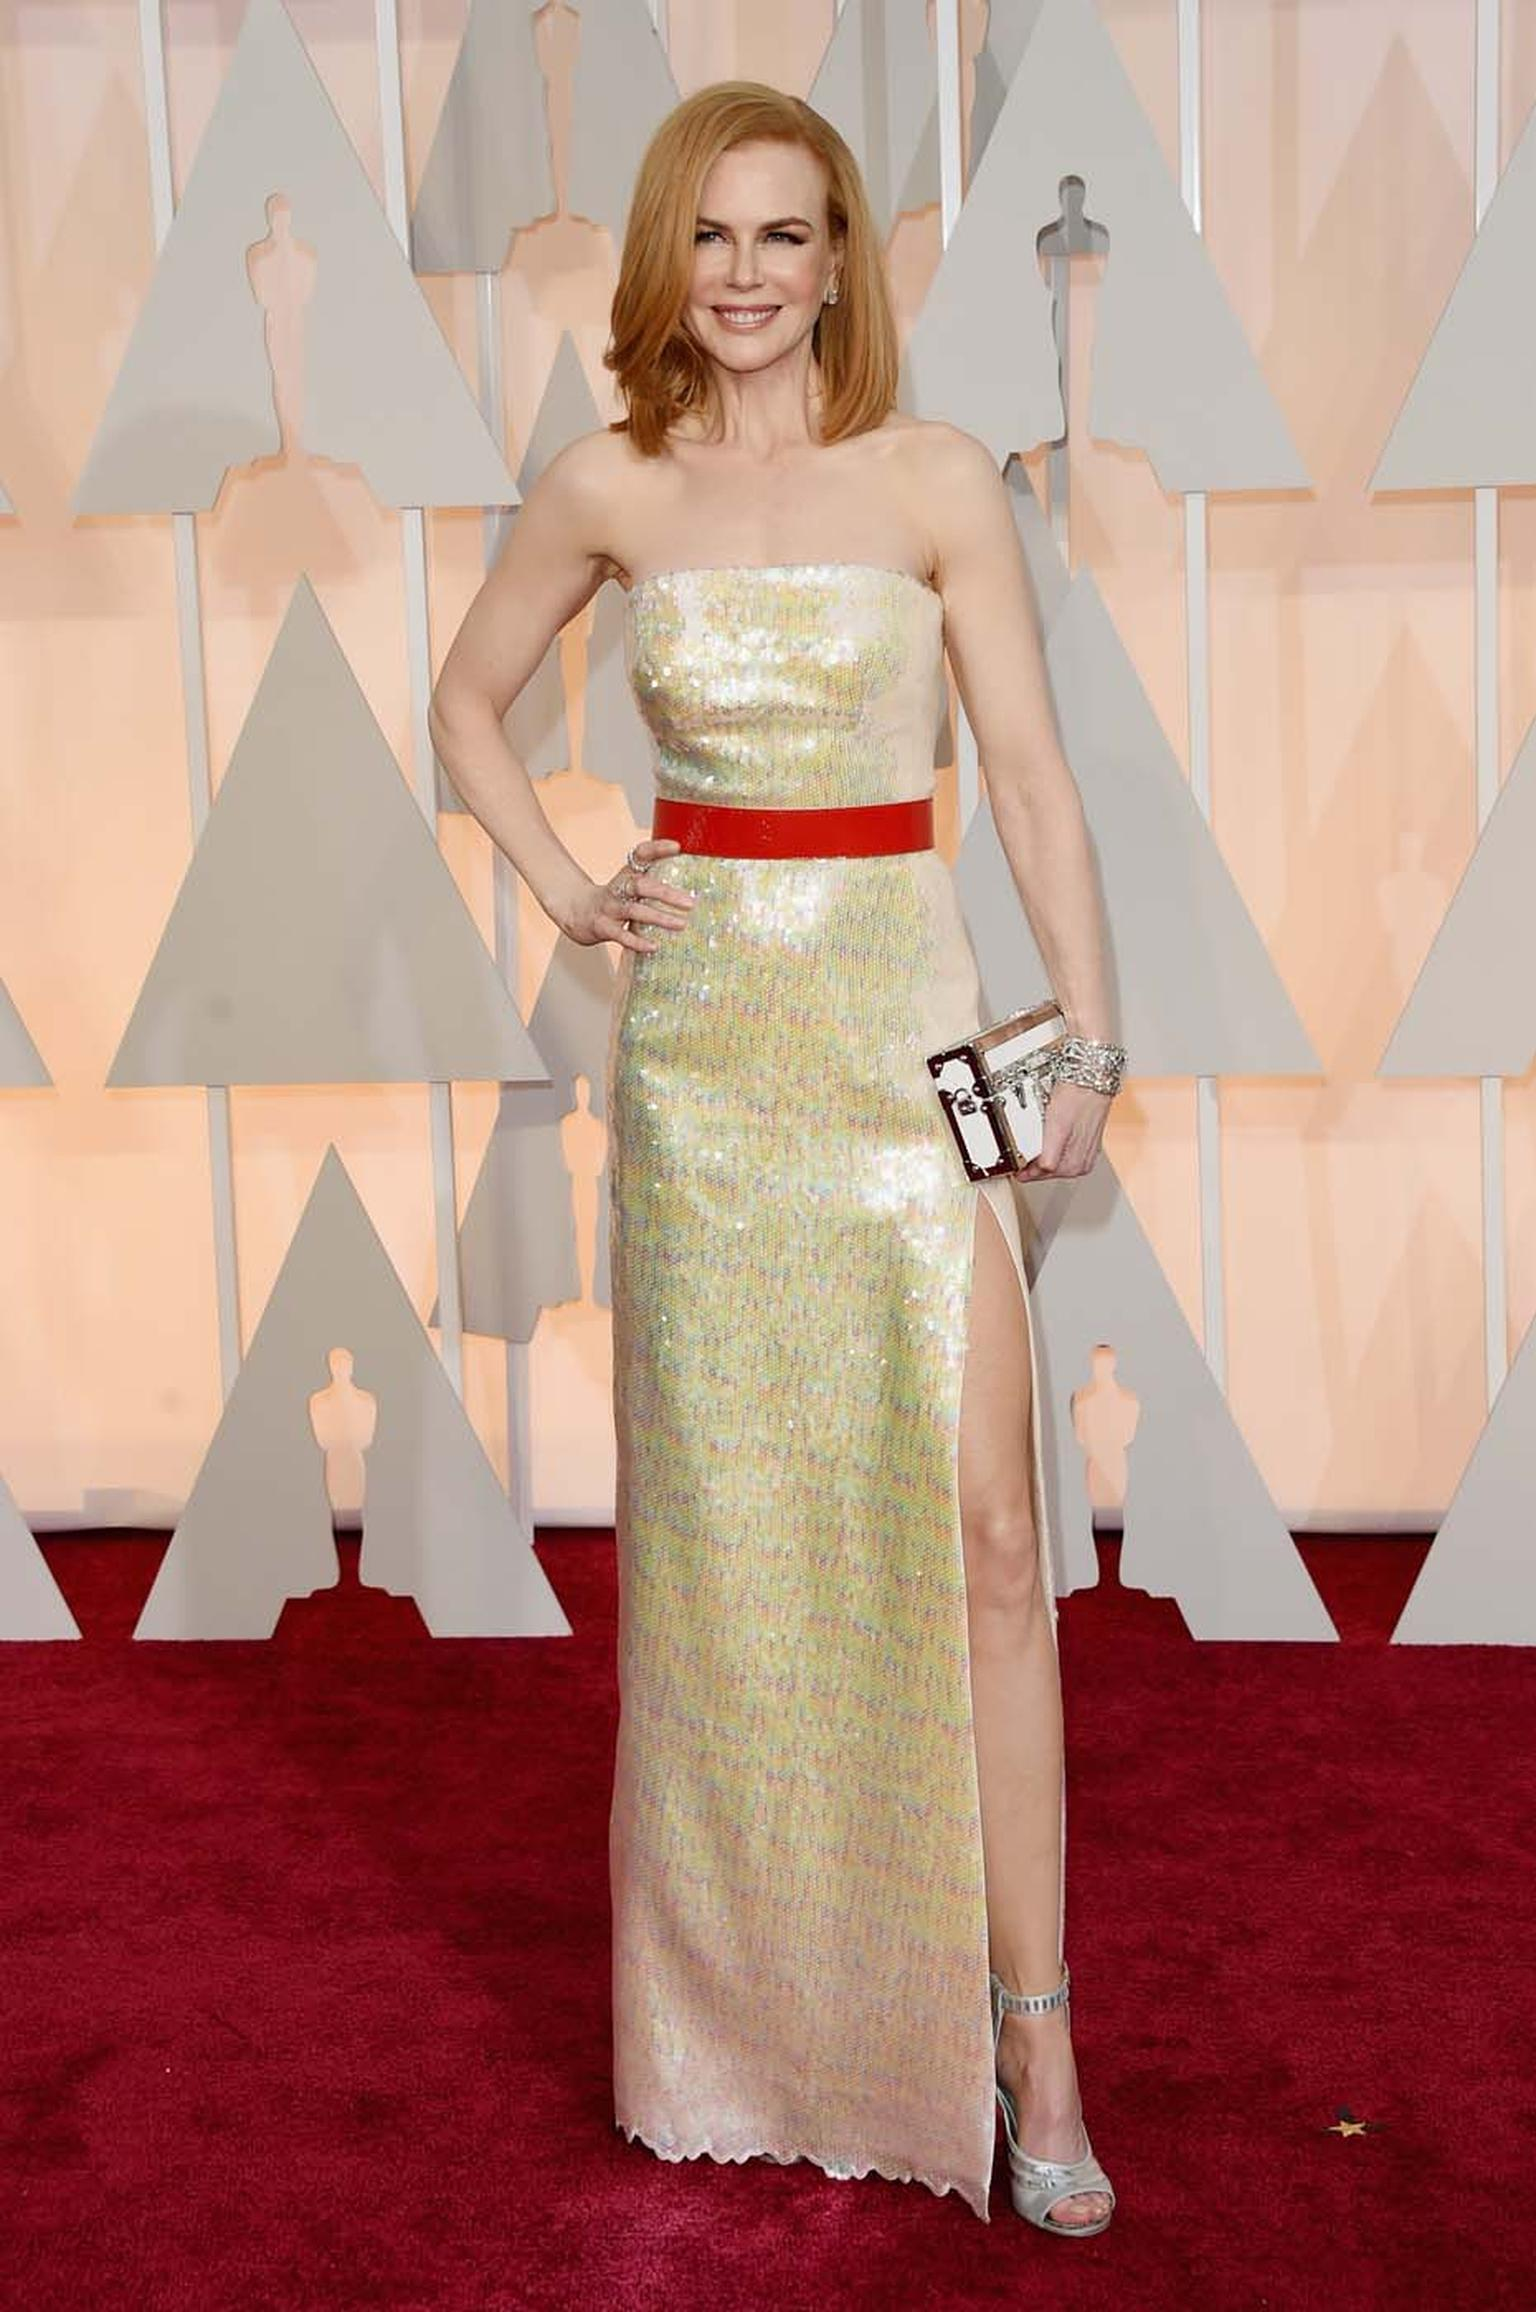 Nicole Kidman wore $7 million of red carpet jewelry to the Oscars. Her diamond ear studs, 82 carat diamond high jewelry bracelet, 16.5 carat diamond solitaire ring and a smaller diamond band ring, all by Harry Winston, complemented her Chanel dress perfec